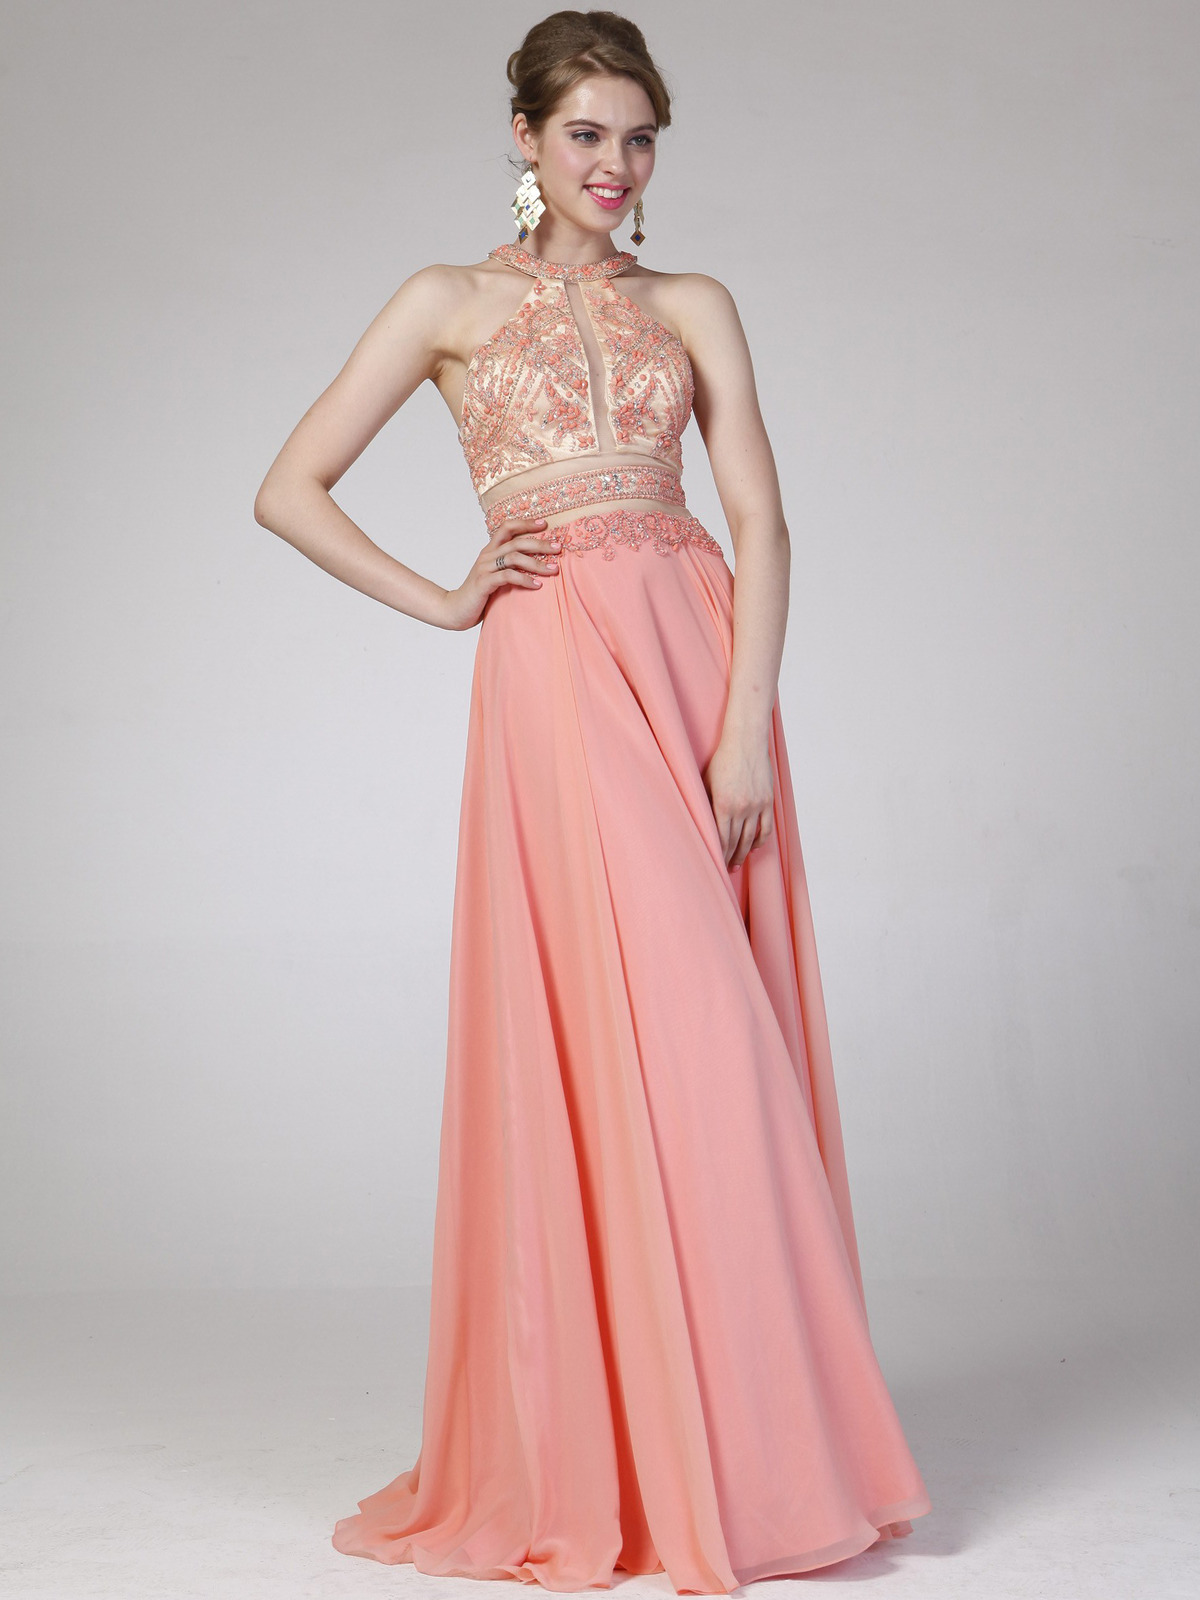 Two Piece Prom Dress | Sung Boutique L.A.